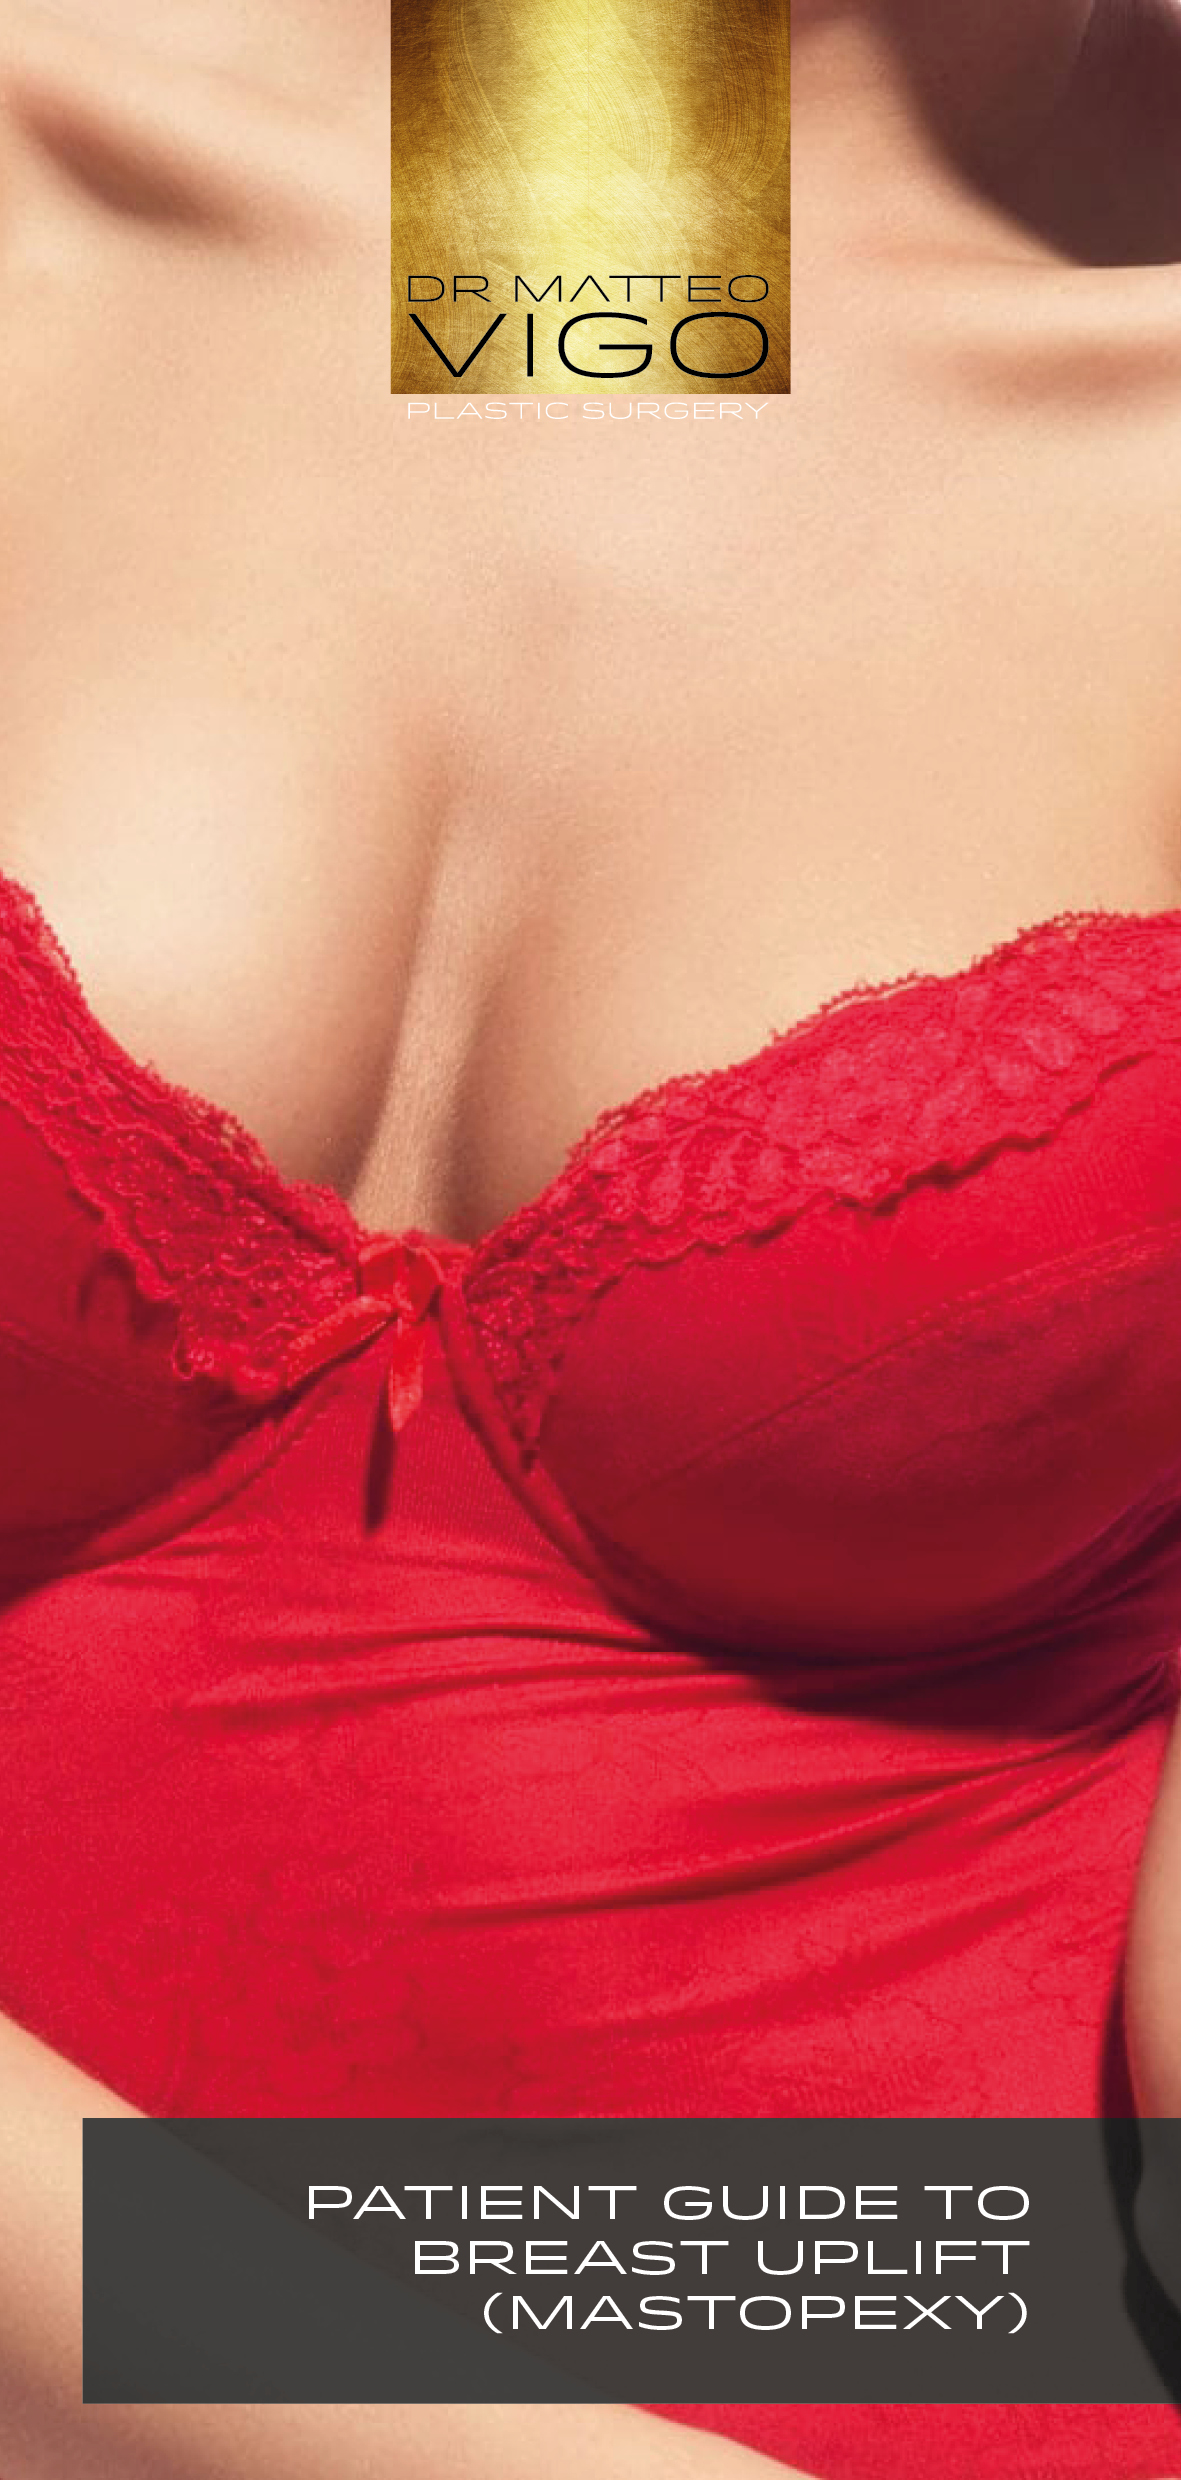 A Patient Guide to Breast Uplift (Mastopexy)